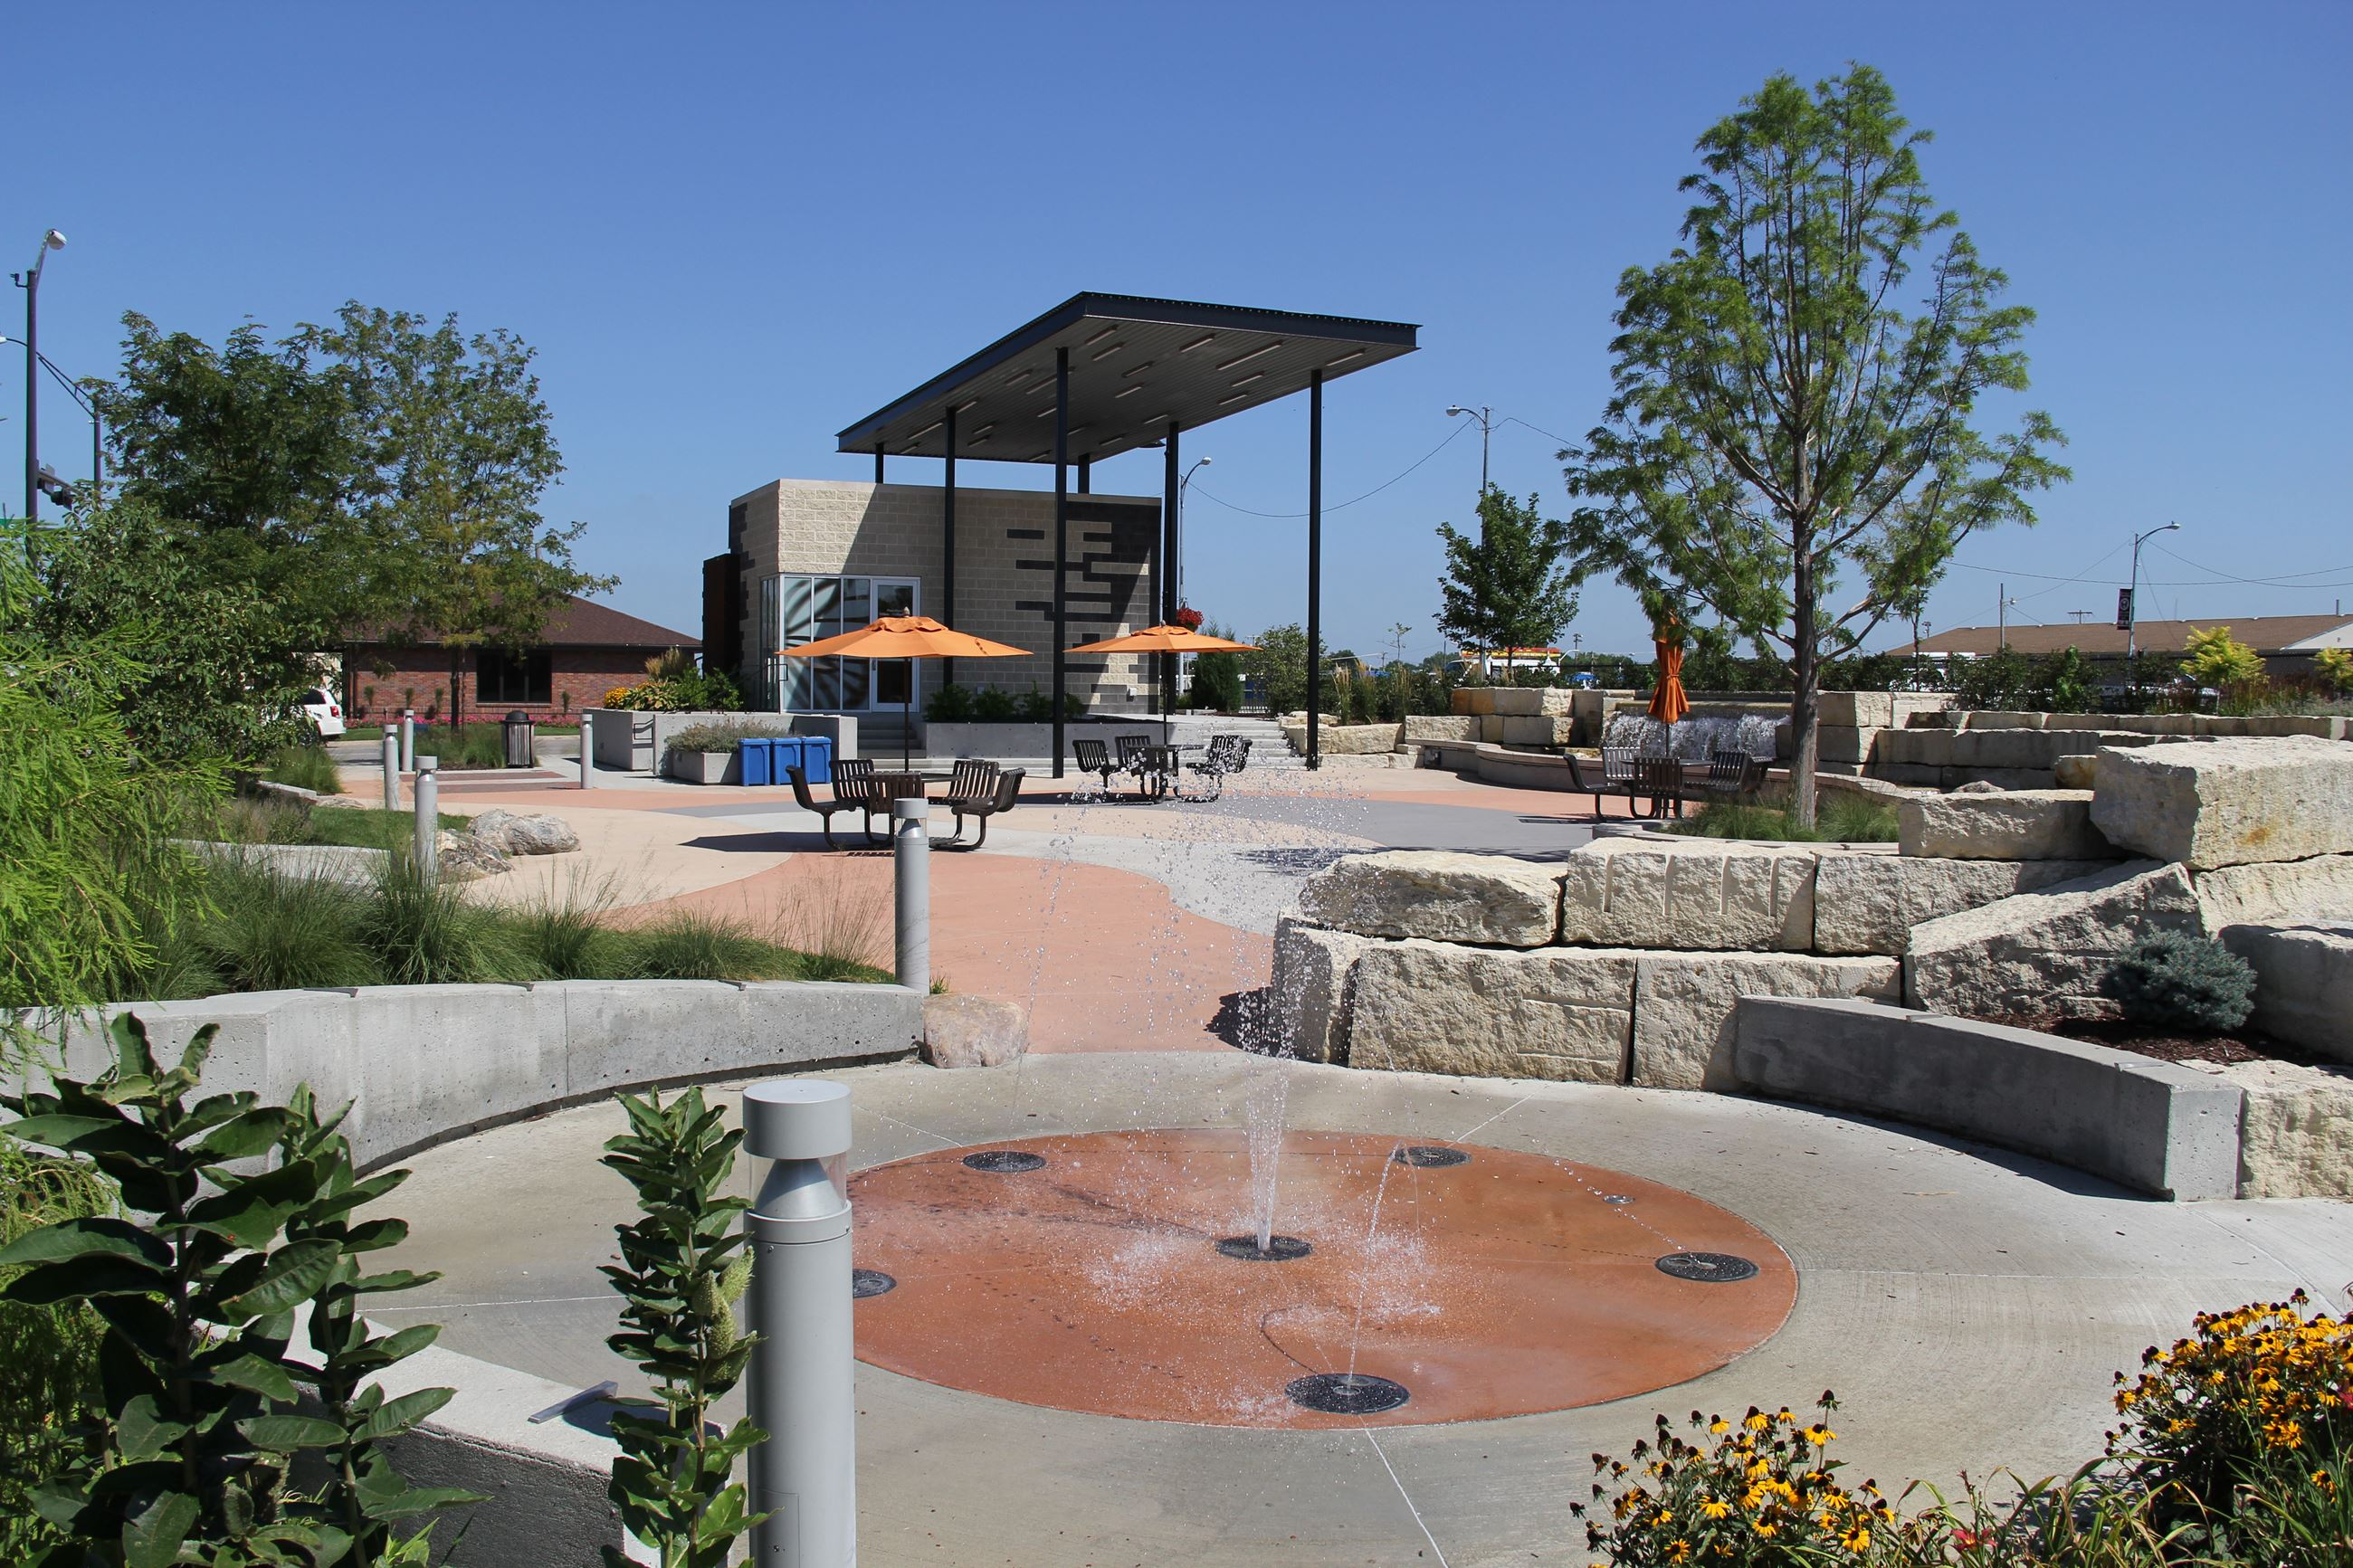 First Street Plaza Splash Pad